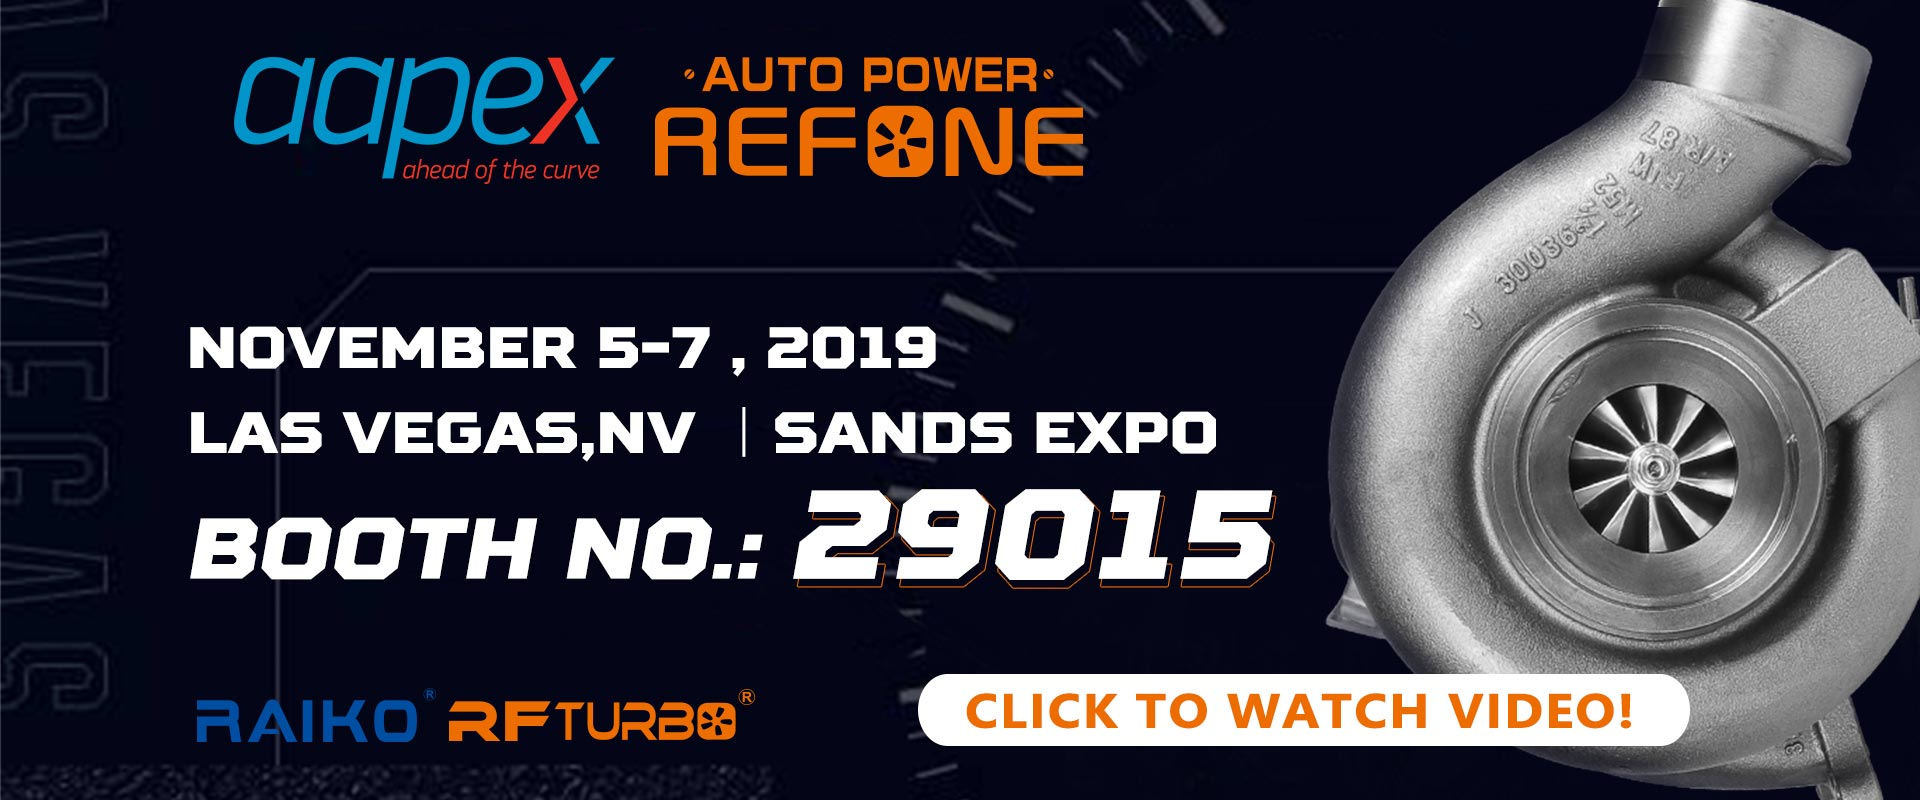 Refone will attend AAPEX Las Vegas